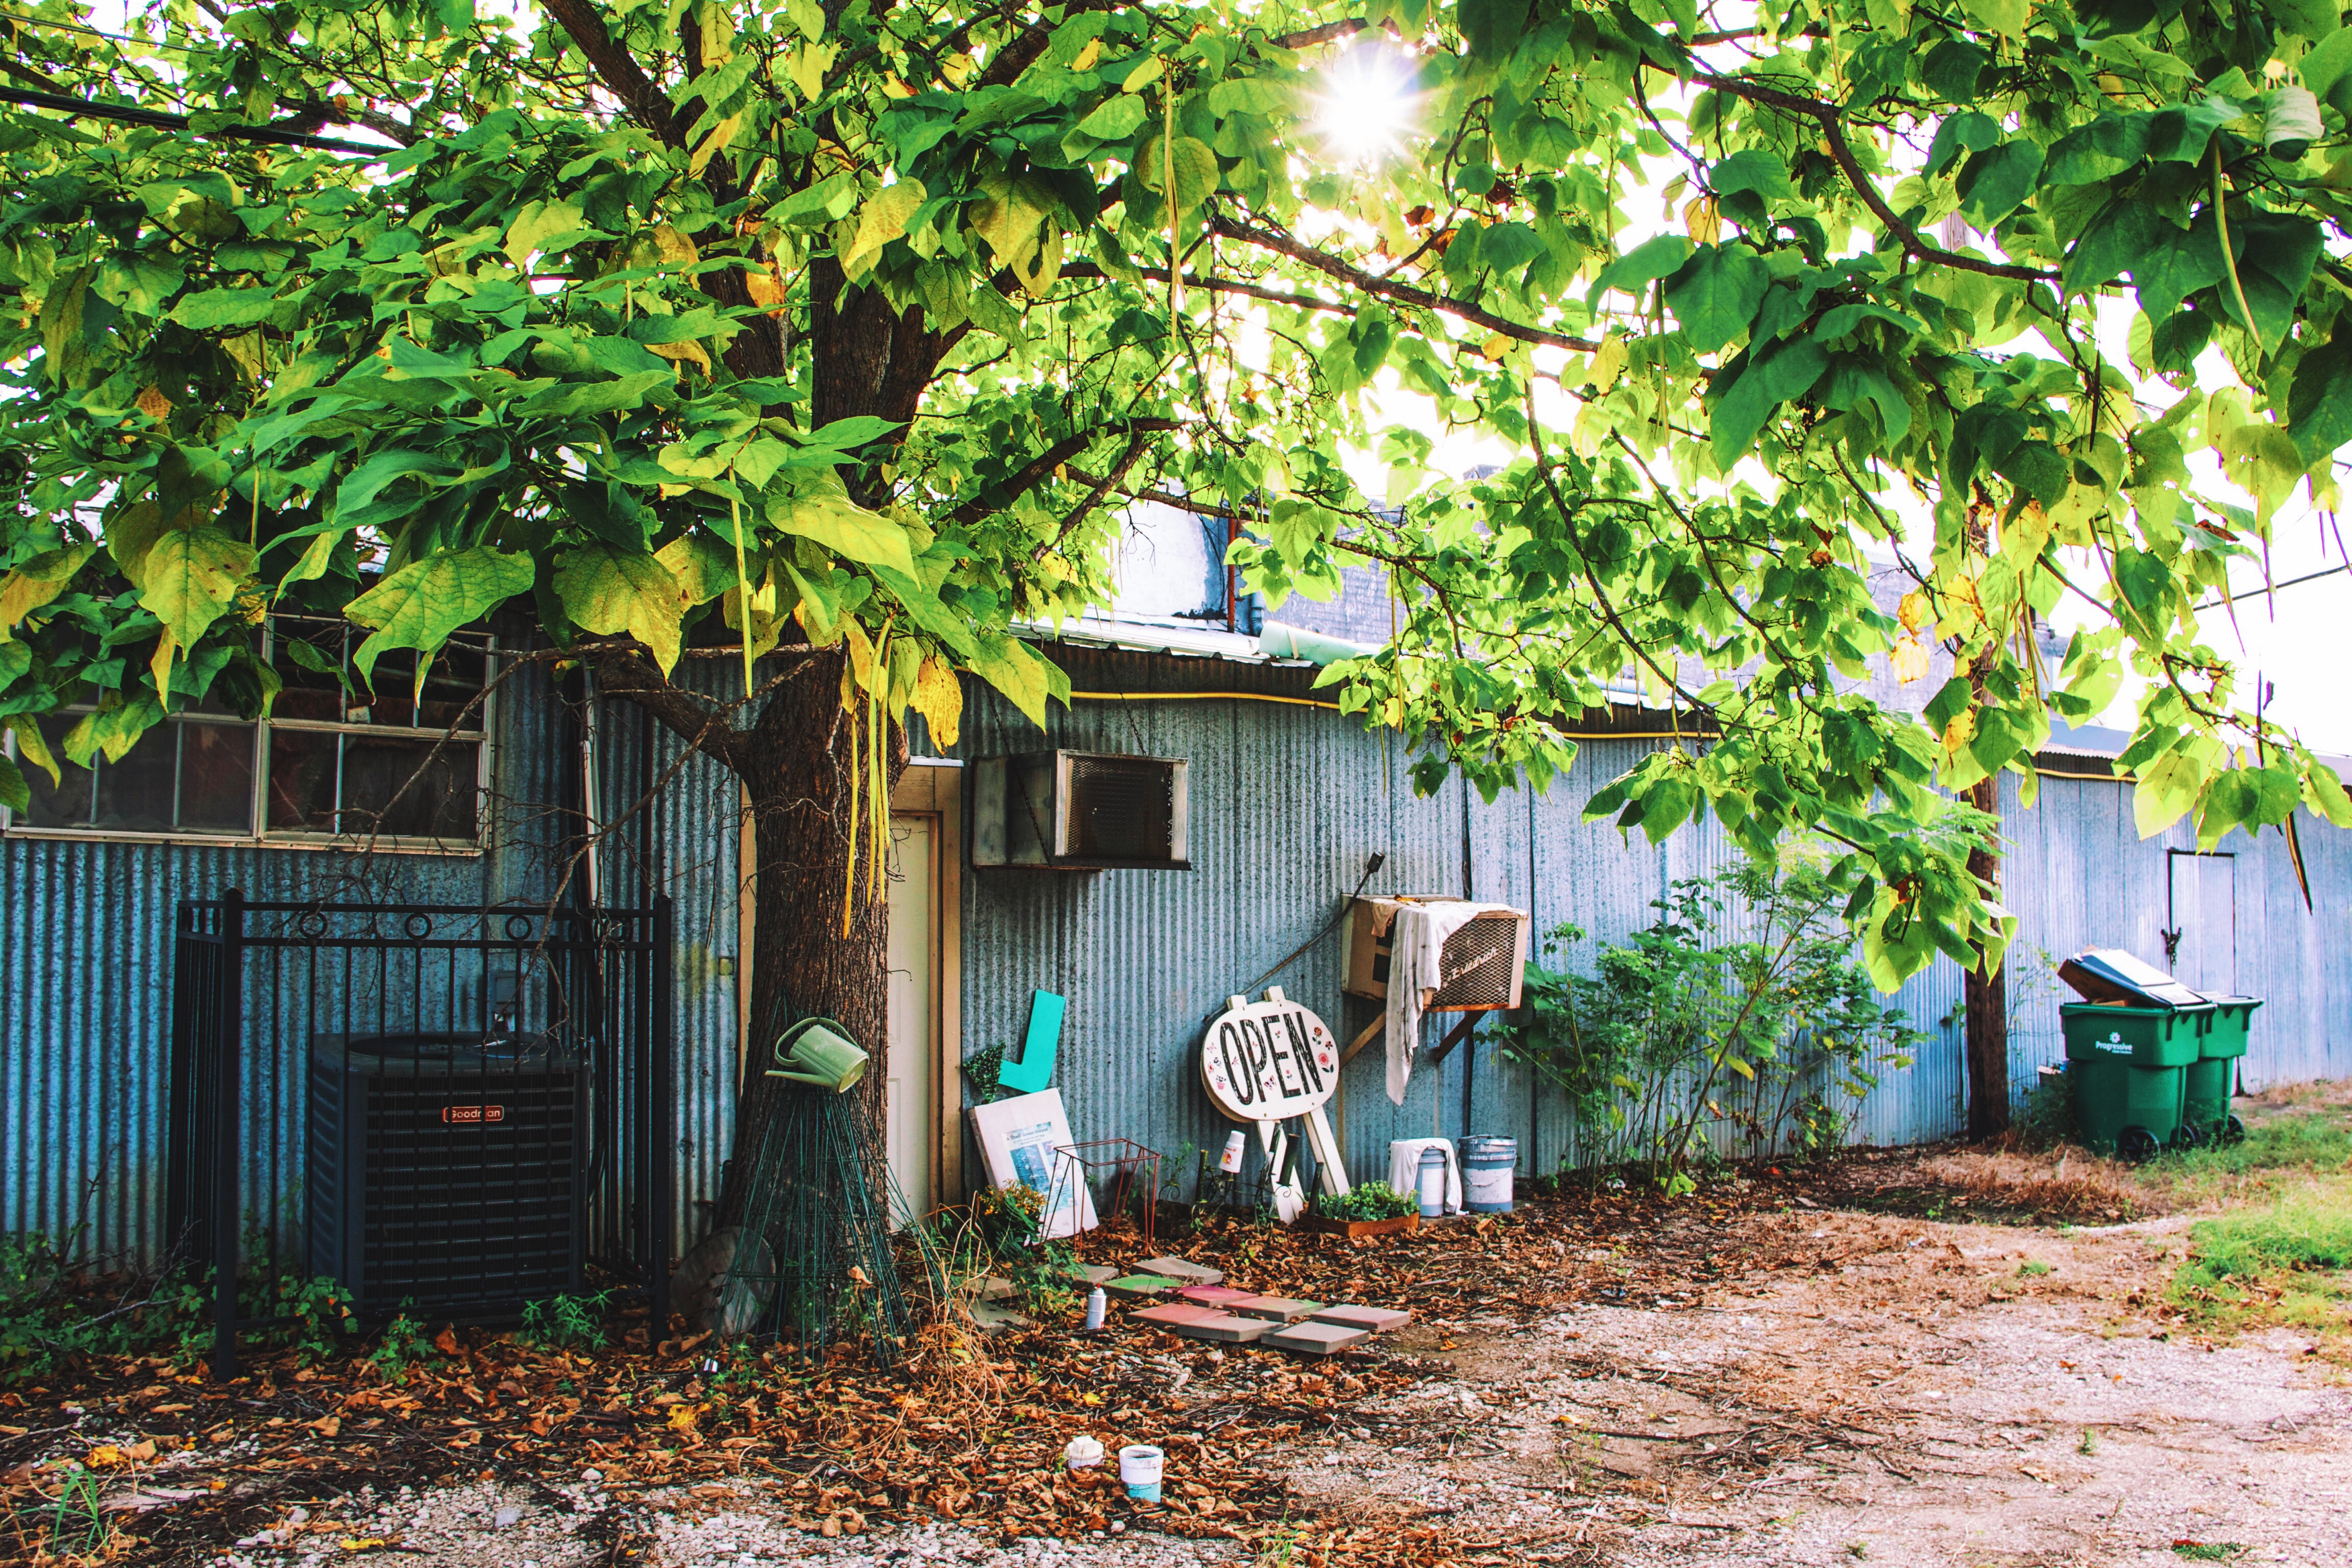 Car Town Caddo Mills >> There Is a Back Alley- Caddo Mills, Texas | Sleepy Coffee and Fables